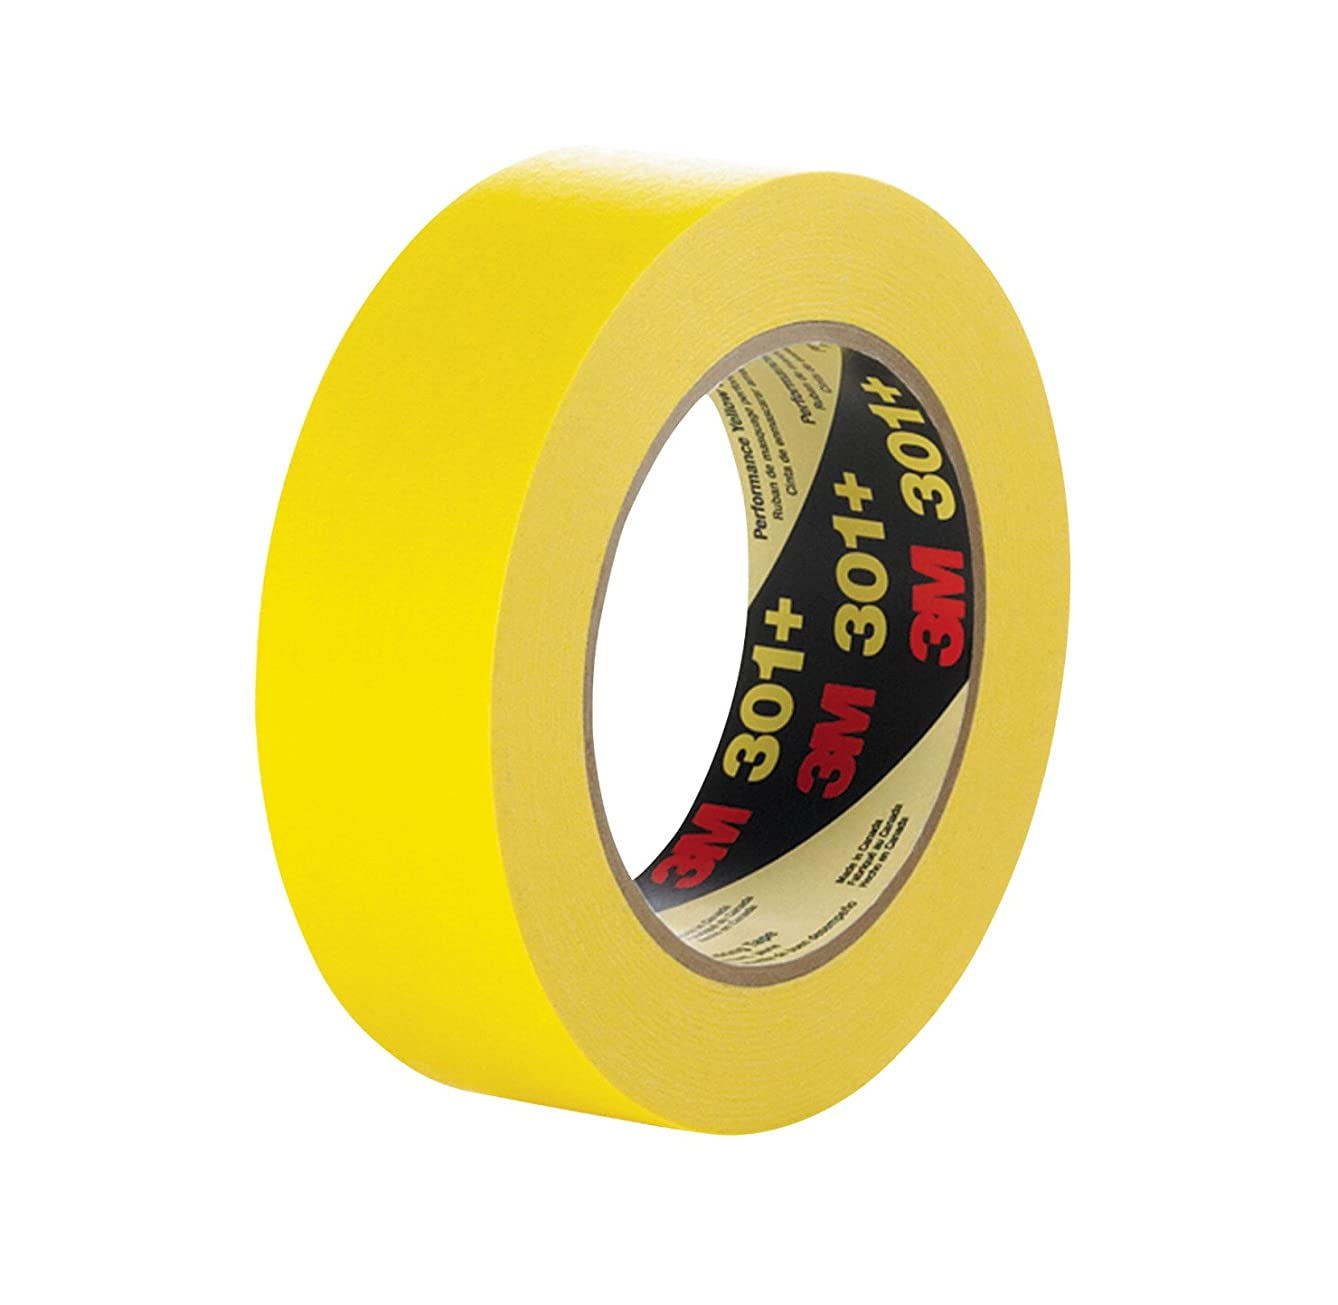 3M 301+18 301+ Yellow Masking or Painter's Tape, 18 mm Width